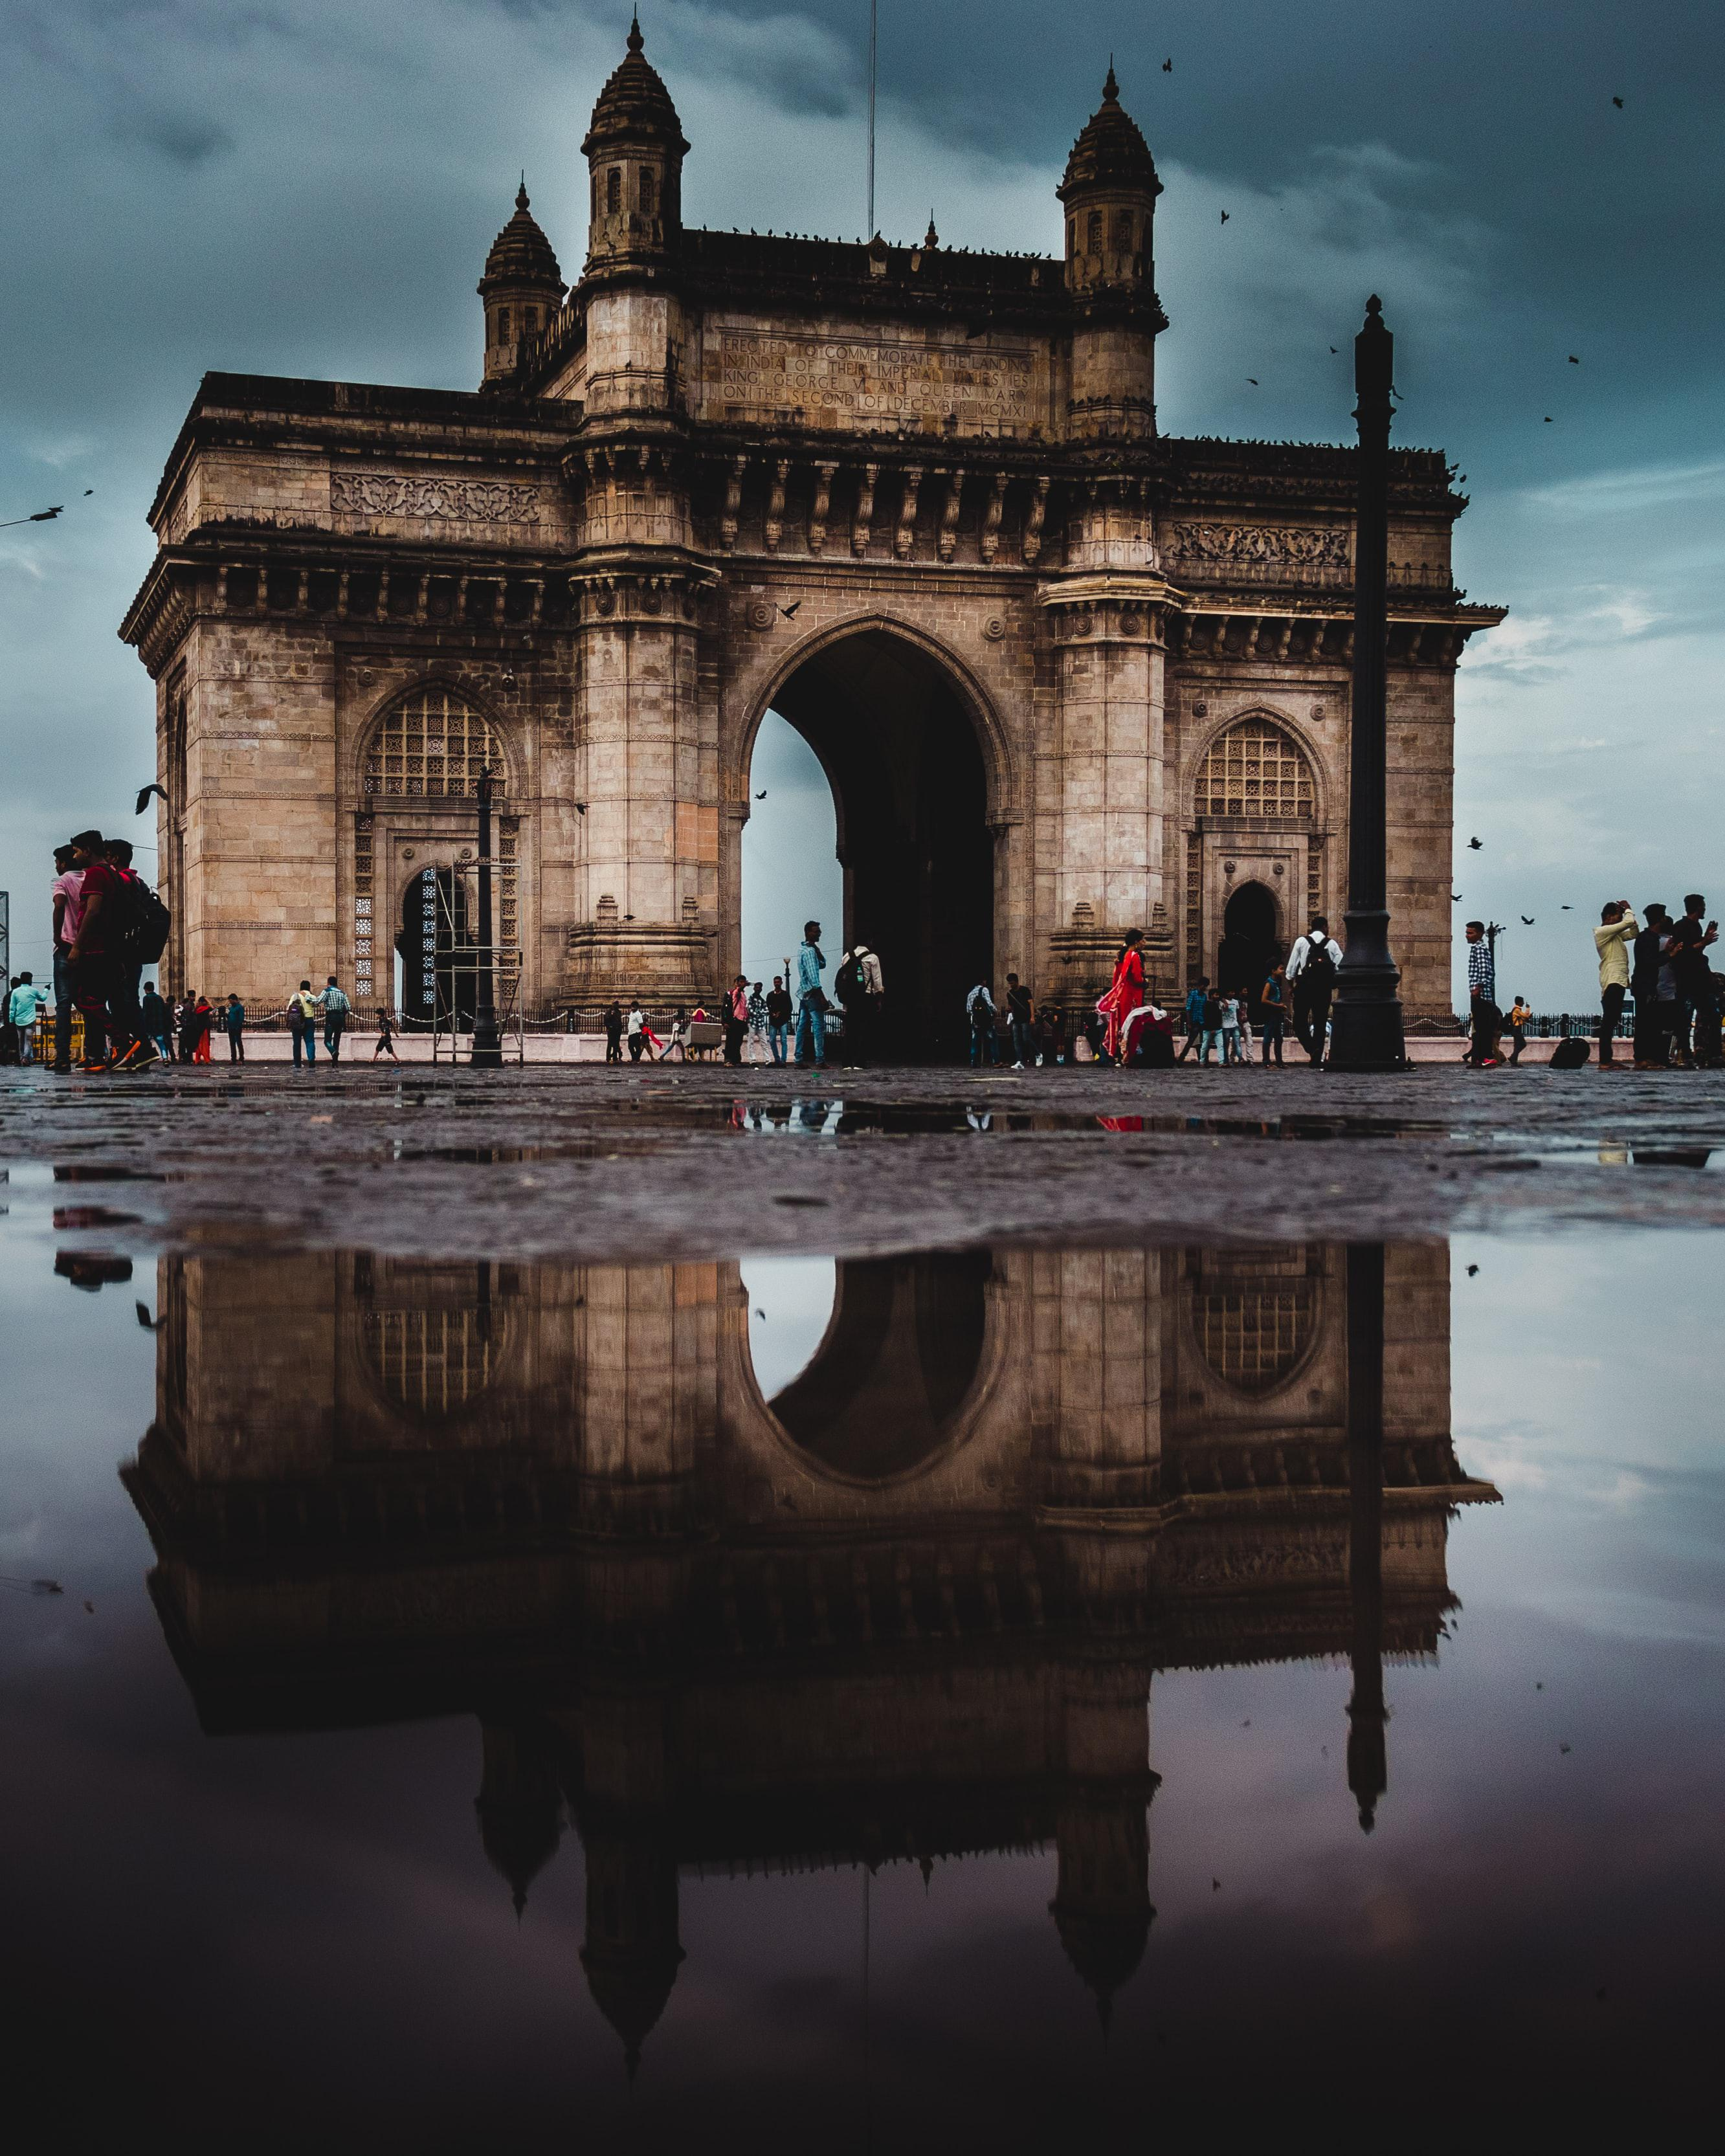 Mumbai HD Wallpaper on